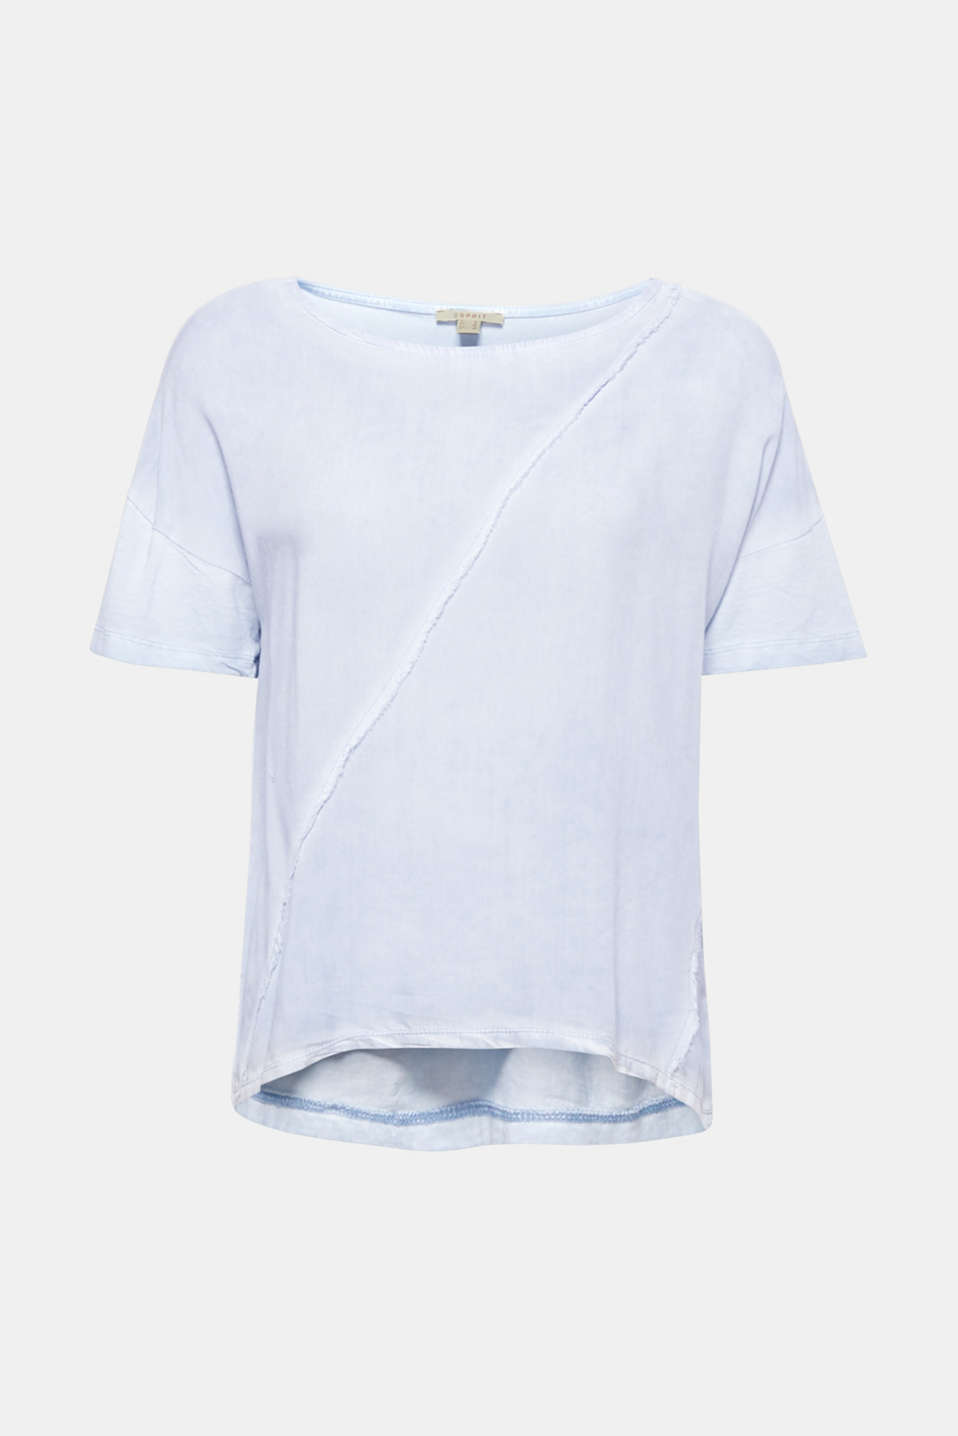 This blouse top embodies casual style with its combination of a trendy dye and unfinished hem edges